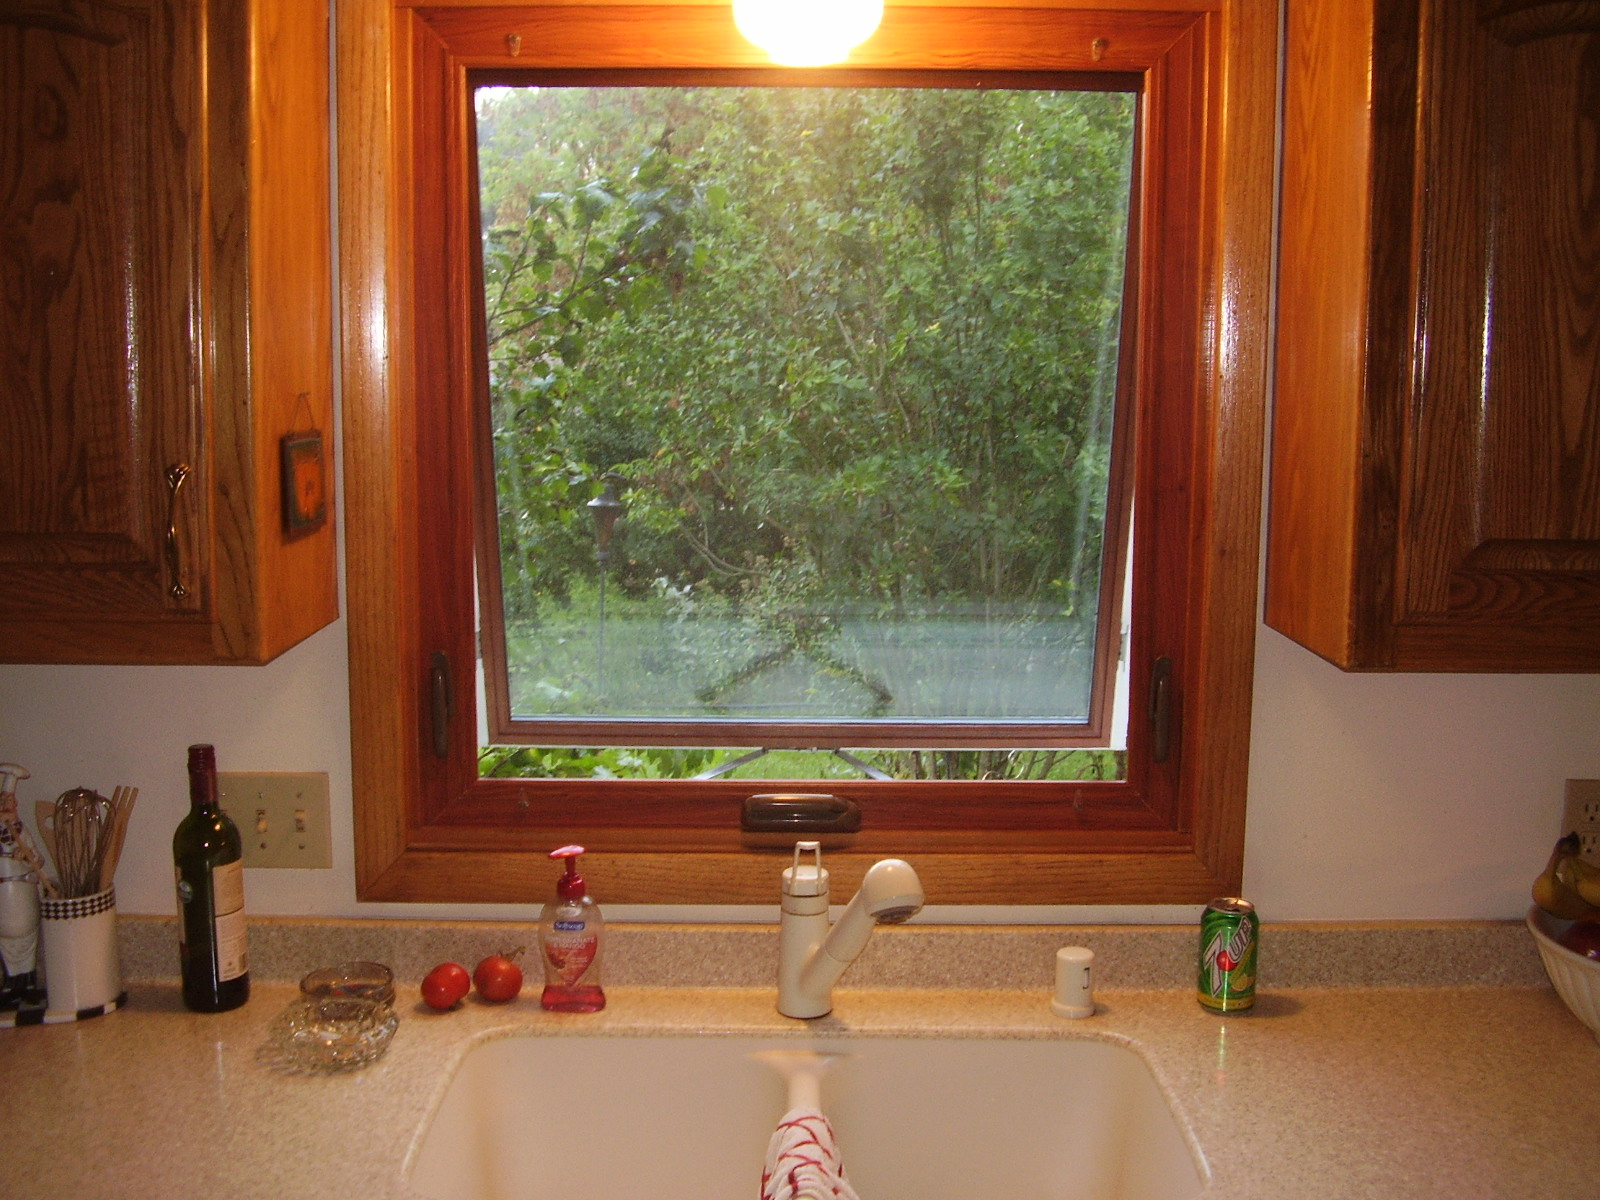 Vinyl windows vinyl windows reviews for Vinyl window reviews